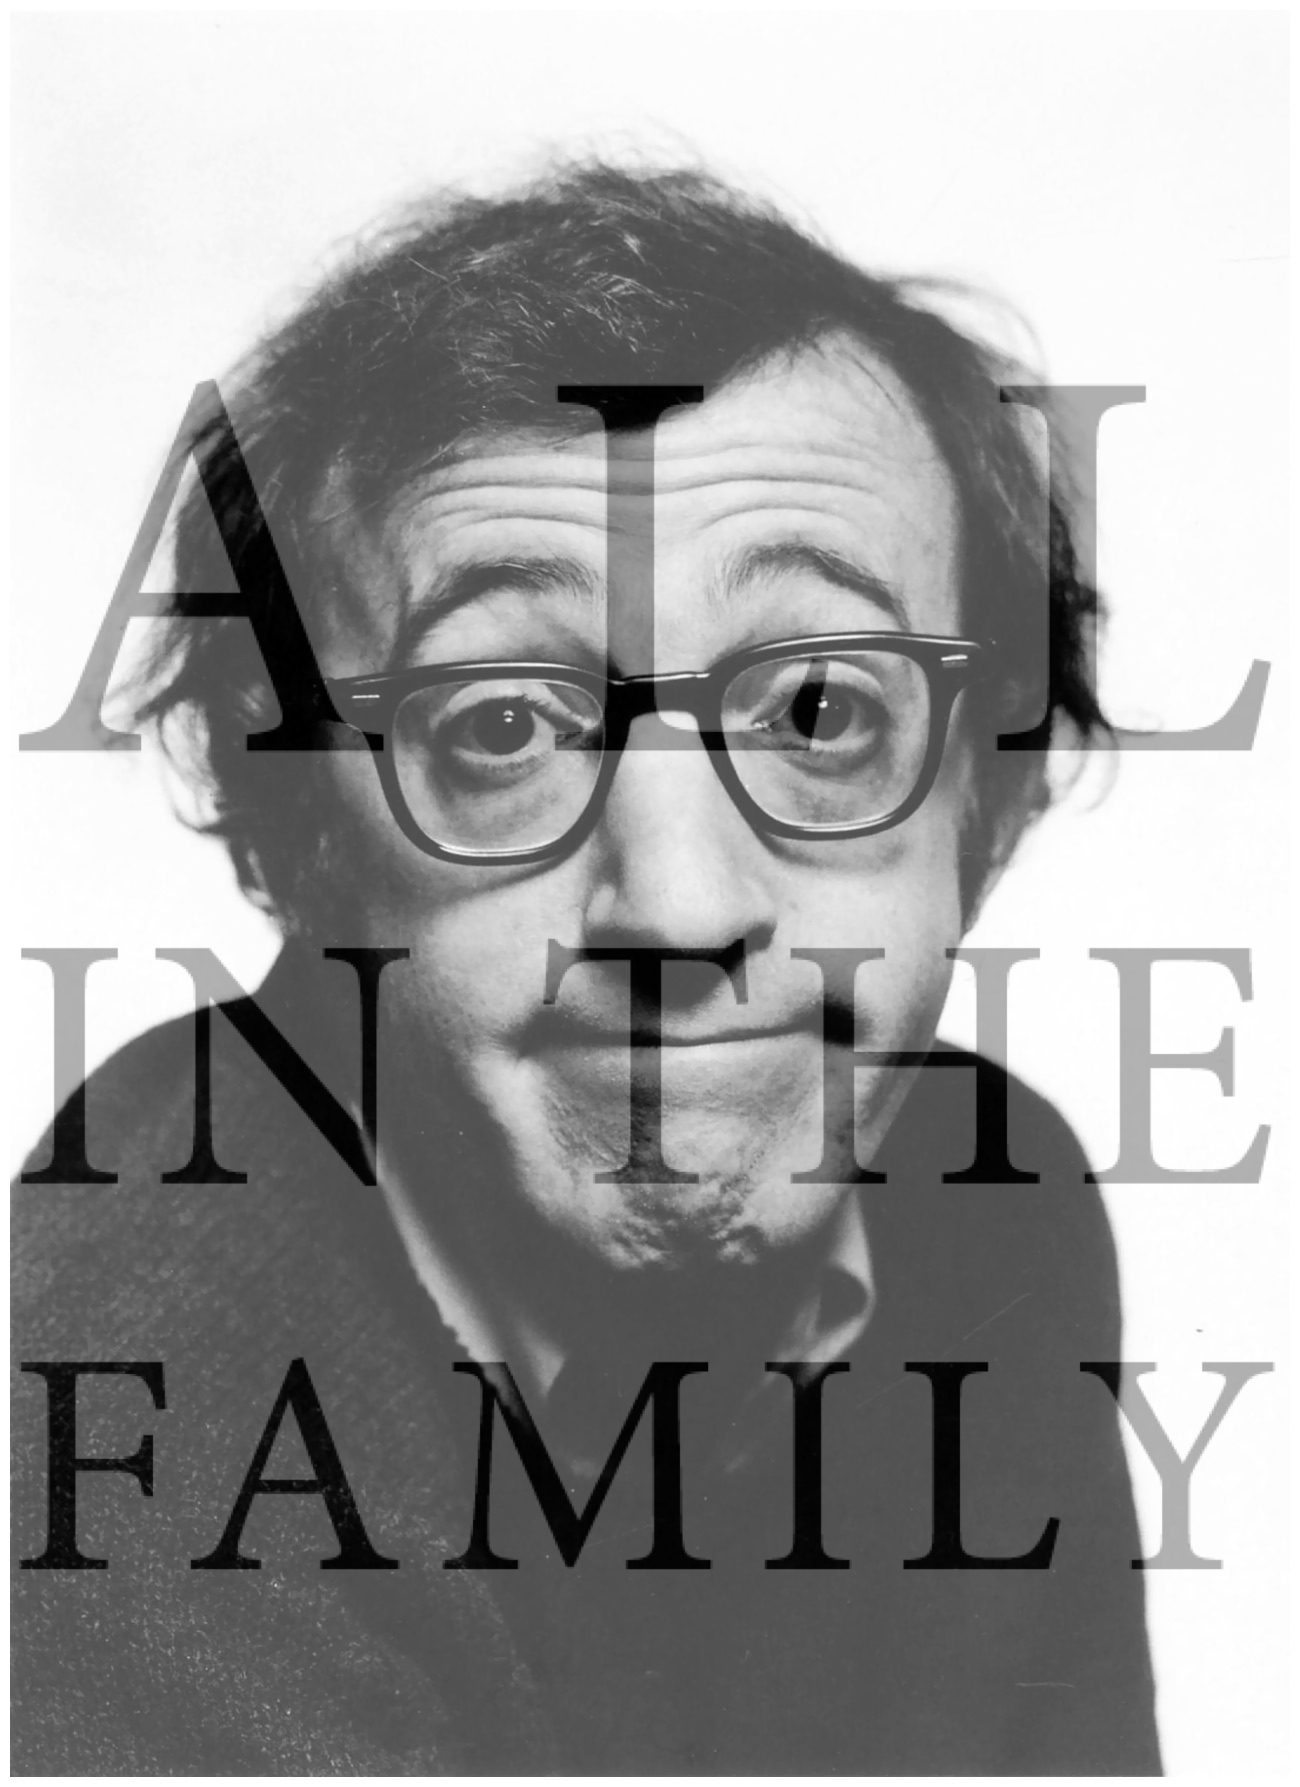 Woody Allen is an American Producer, Entertainer, Director, Oscar-Winner, and Actor. World famous for his 50 years of entertain contributions to the film industry. Woody married the adopted daughter of Mia Farrow, his girl friend of 12 years.